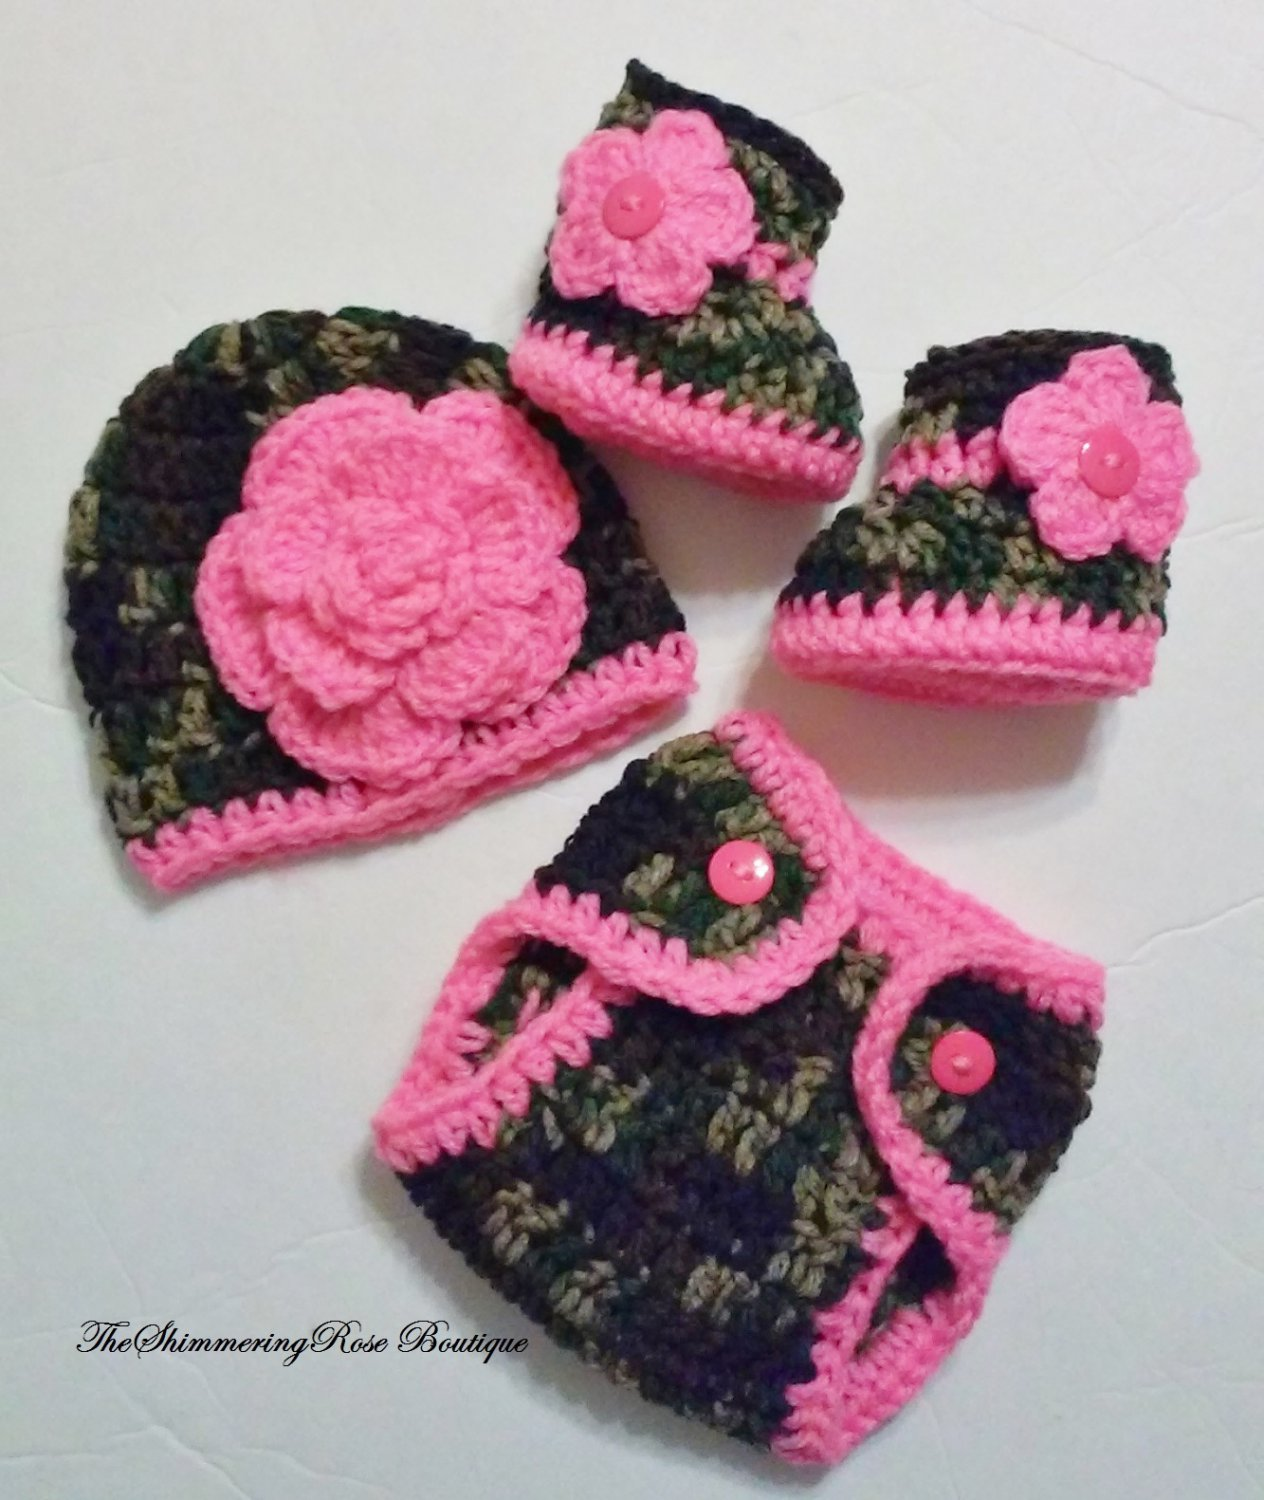 Crochet Dark Camo and Floral Diaper Cover Set in Bright Pink with Hat, Booties Newborn 0-3 Months